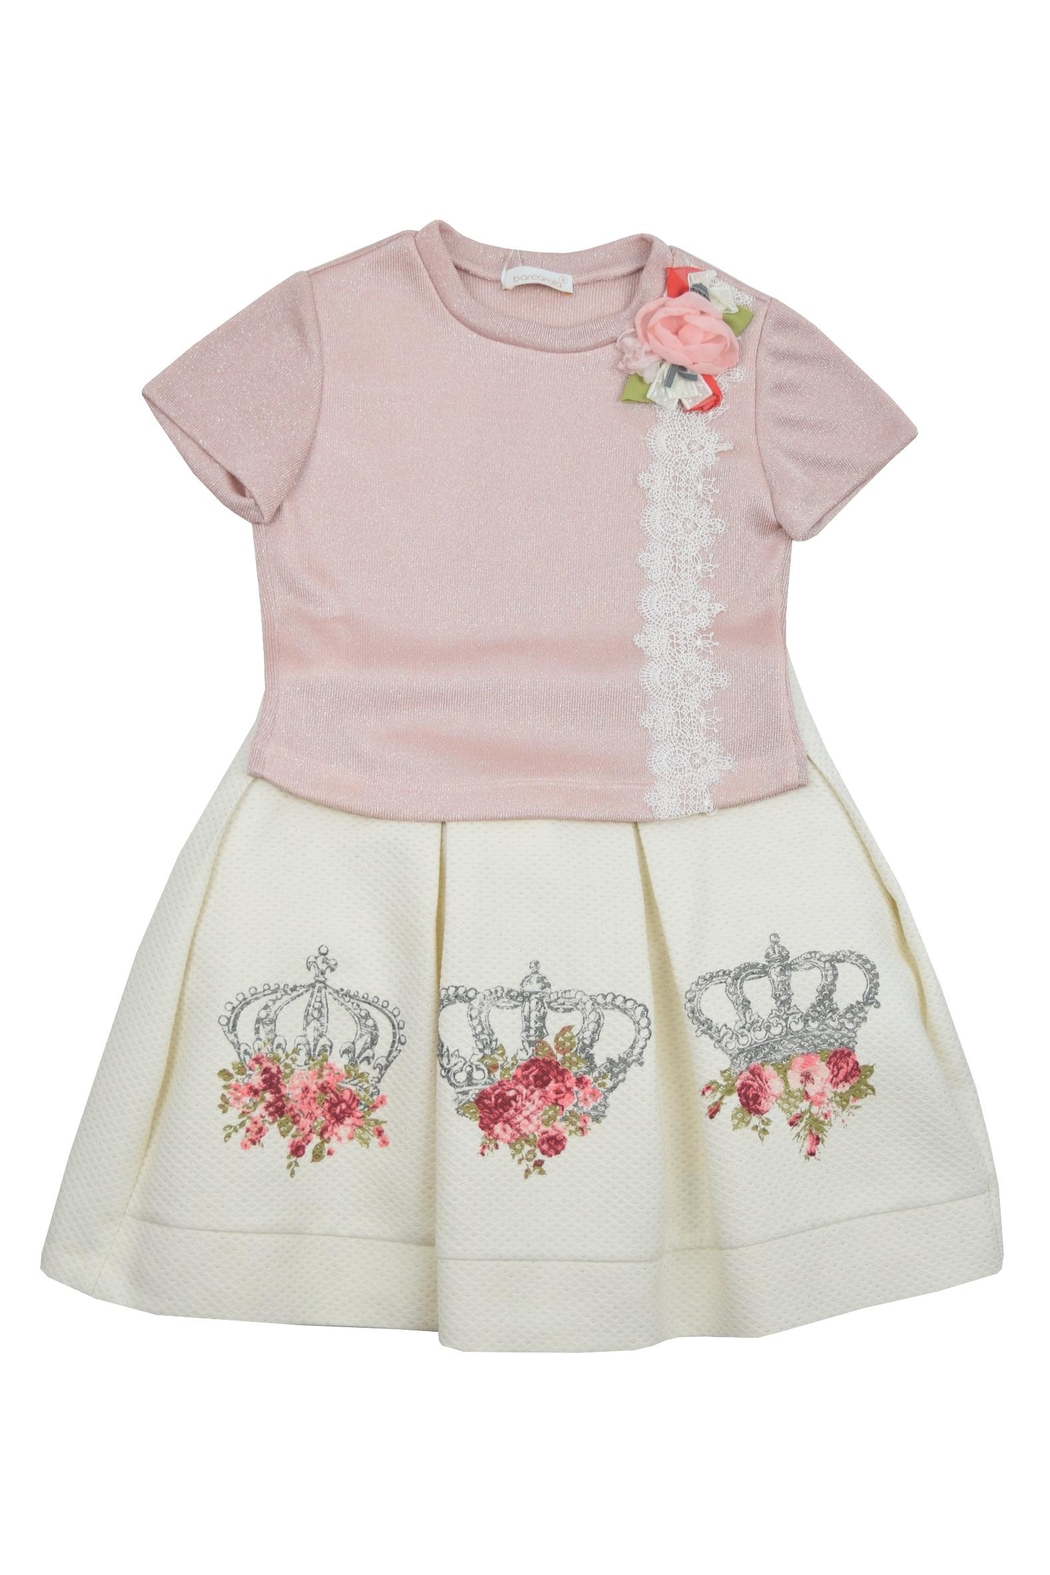 Barcarola Royal Crown Outfit From Florida By Yoyo Childrens